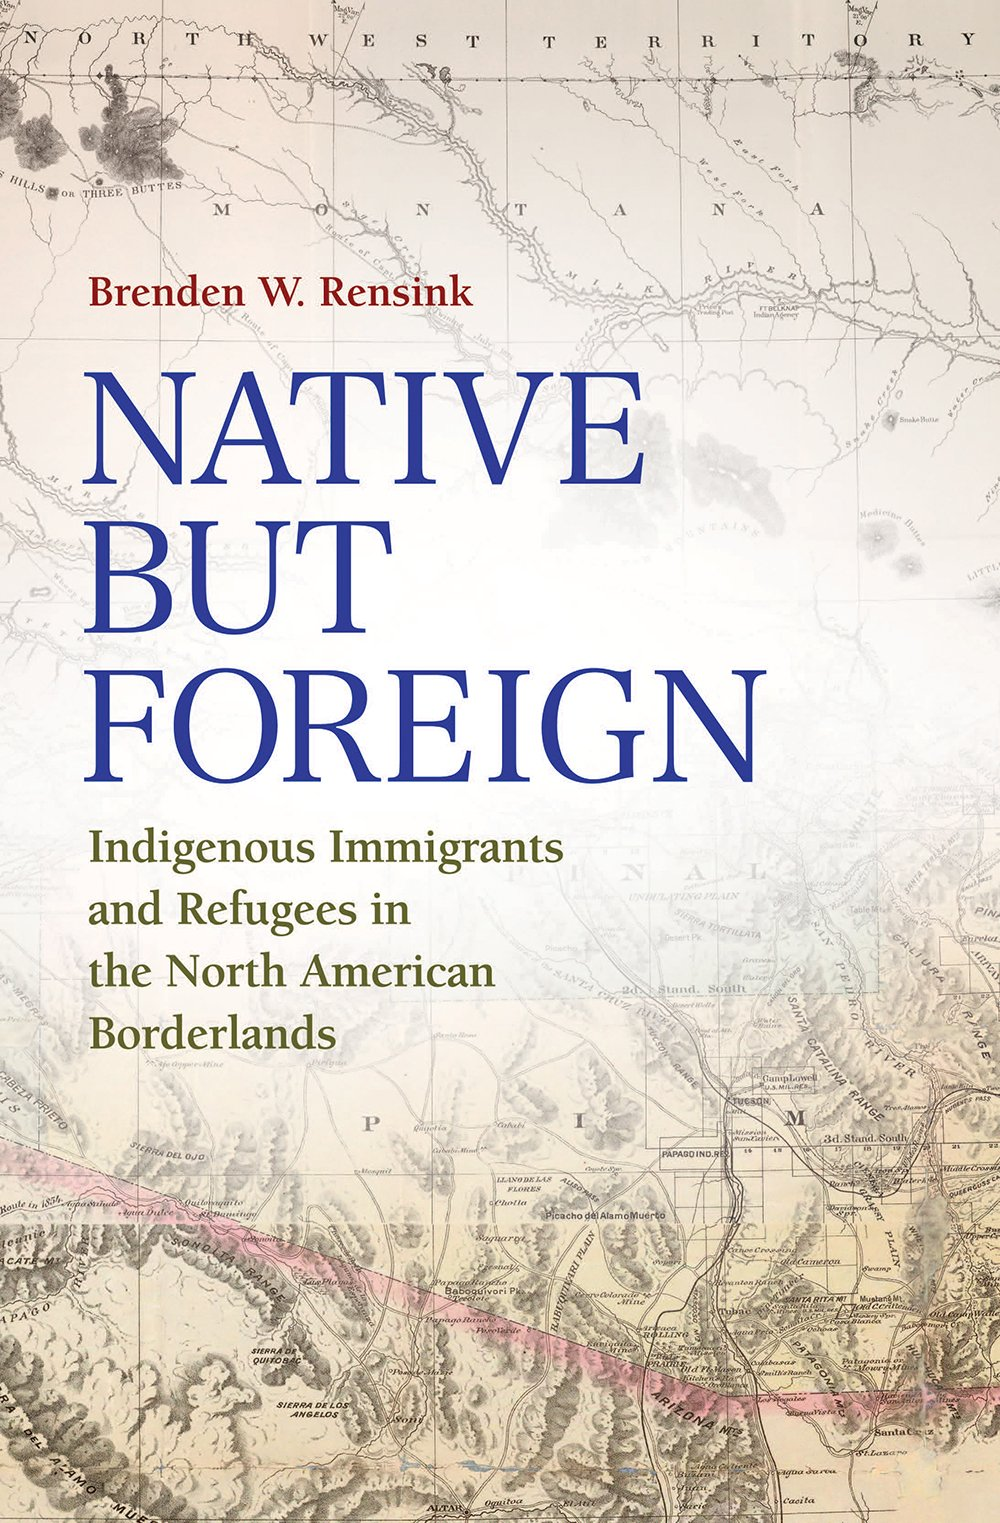 Read Online Native but Foreign: Indigenous Immigrants and Refugees in the North American Borderlands (Connecting the Greater West Series) PDF